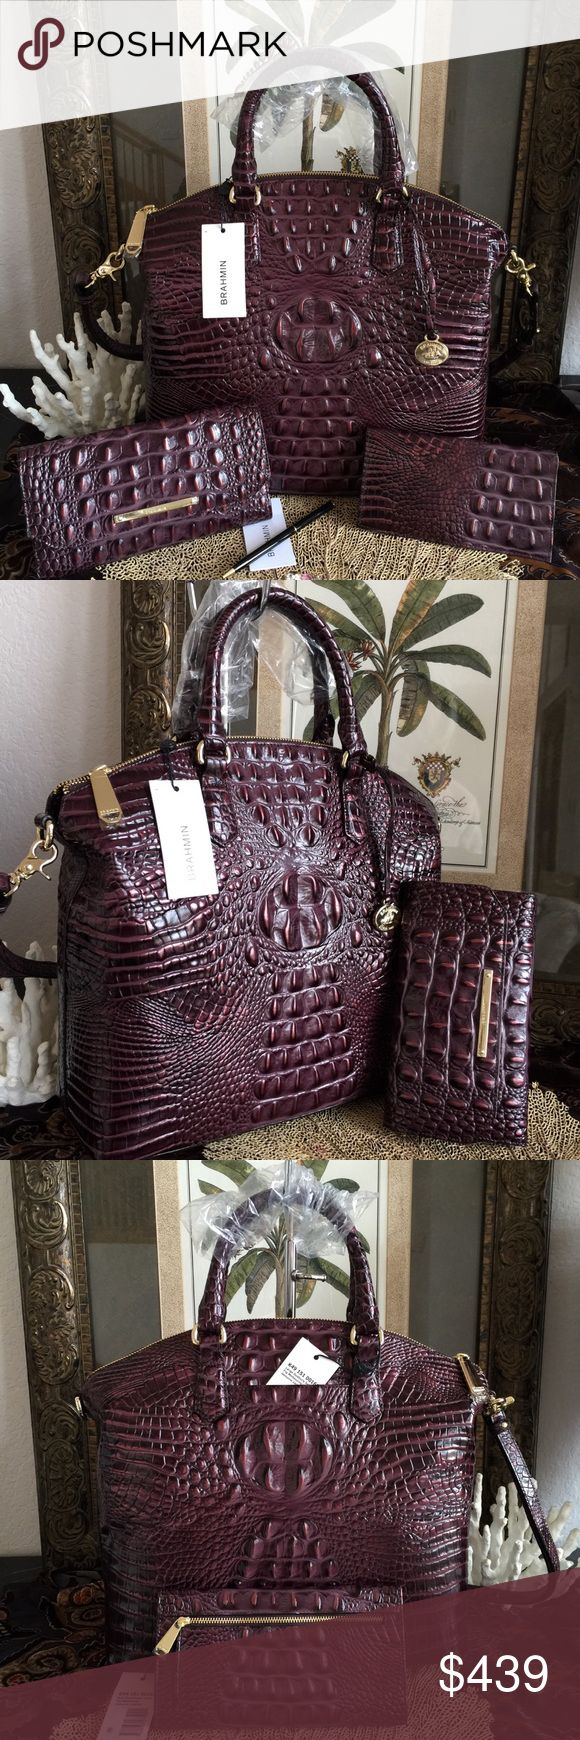 """GORGEOUS SETFIG MELBOURNE Brahmin Lg DUXBURY EXQUISITE! BRAHMIN LARGE DUXBURY DOME SATCHEL +MATCHING WALLET COMPLETE SET includes ATTACHED TAGS,STRAP,REGISTRATION CARDS, &DUST BAG Featured in 'Fig' Melbourne,Brahmin's signature croc-embossed leather in a rich &decadent plum hue. Embossed leather Carry your iPad along w/your favorite essentials. Zip top Removable strap Back slide in pocket 13"""" strap drop Gorgeous color!! WALLET:Removable checkbook cover, 11 credit card slots,back zip coin…"""